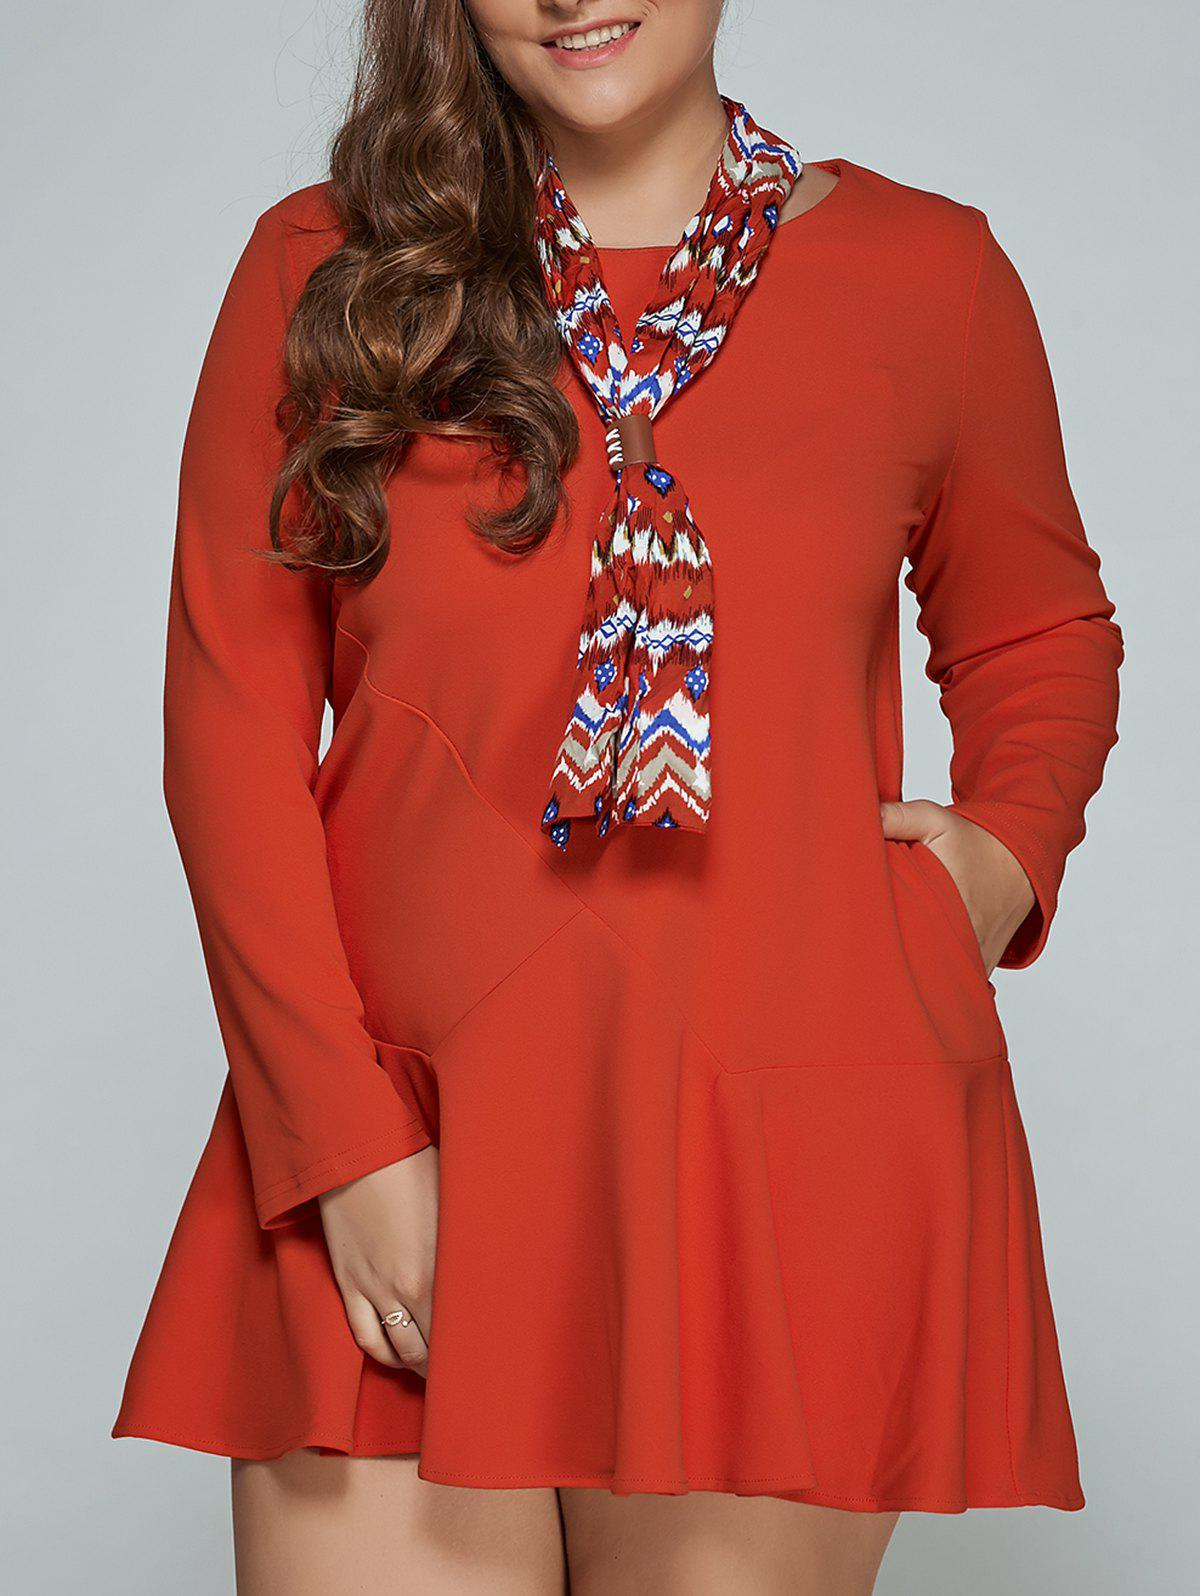 65% OFF] Mini Plus Size Long Sleeve Skater Dress | Rosegal